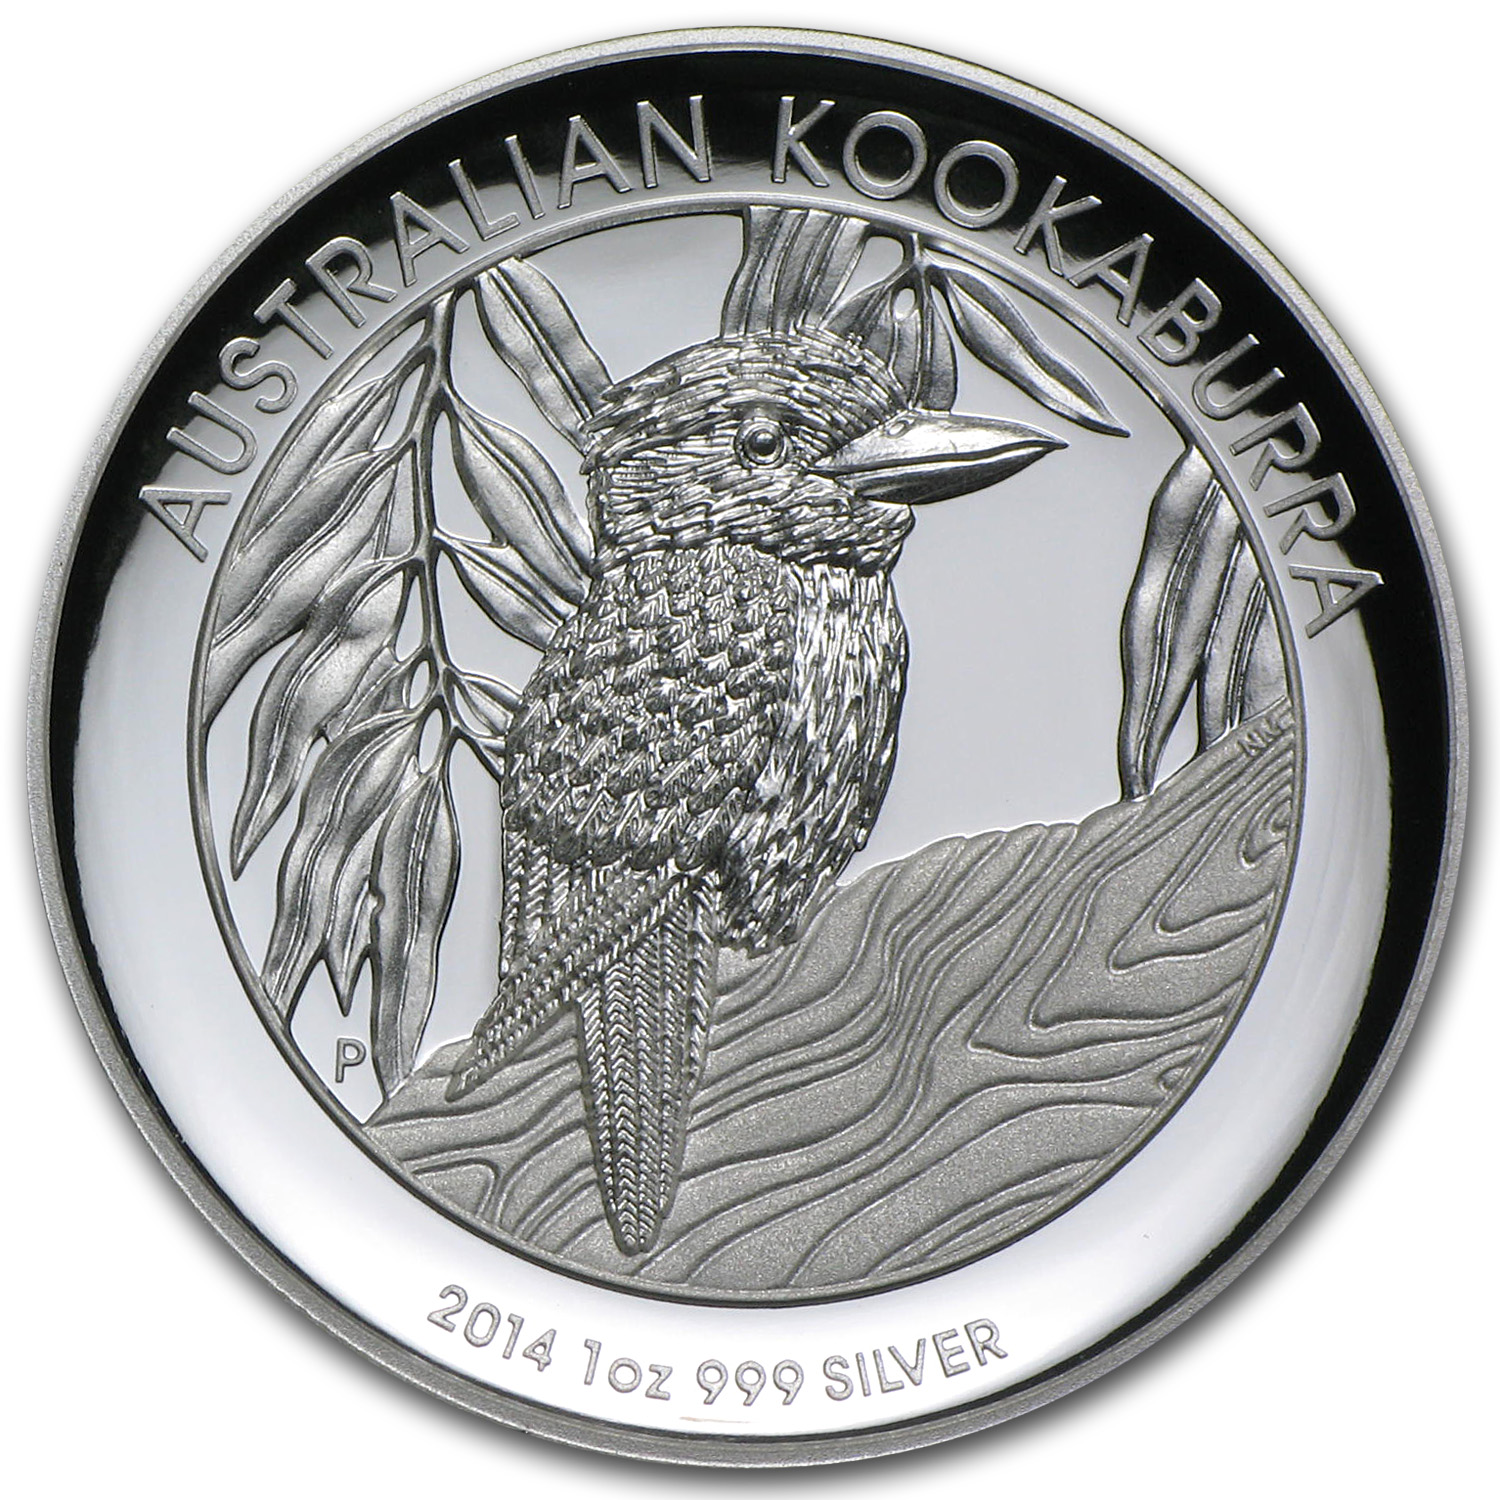 2014 Australia 1 oz Silver Kookaburra Proof (High Relief)